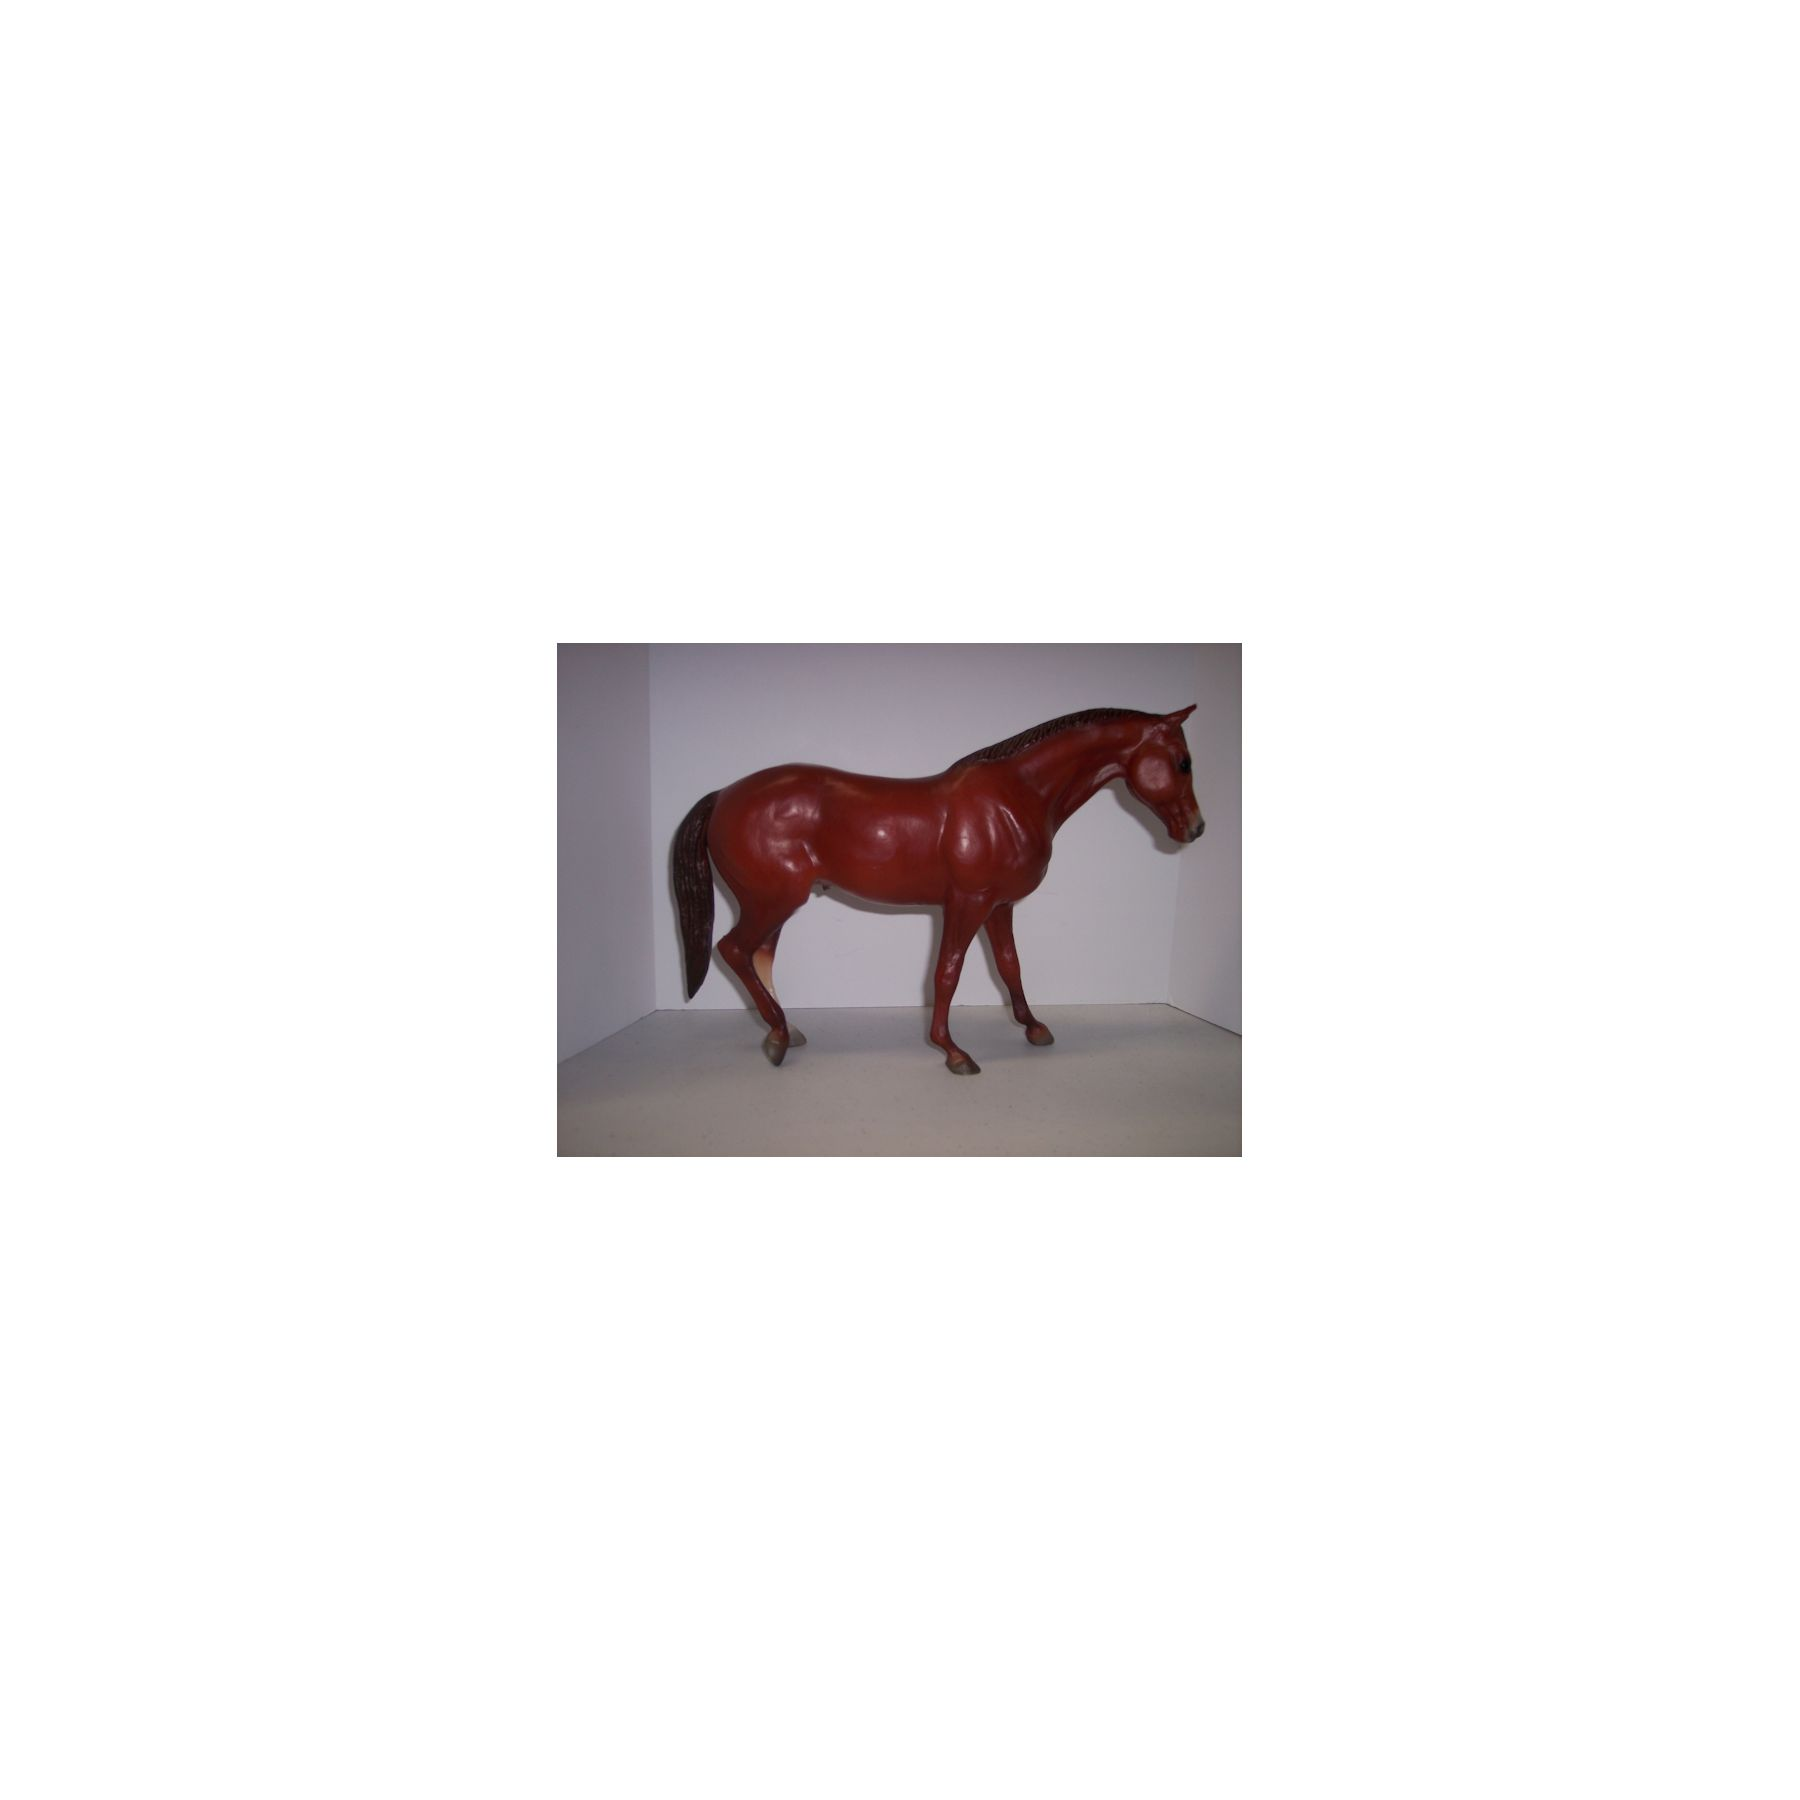 Breyer 1990 JC Penney SR Traditional Horse #717450-KL